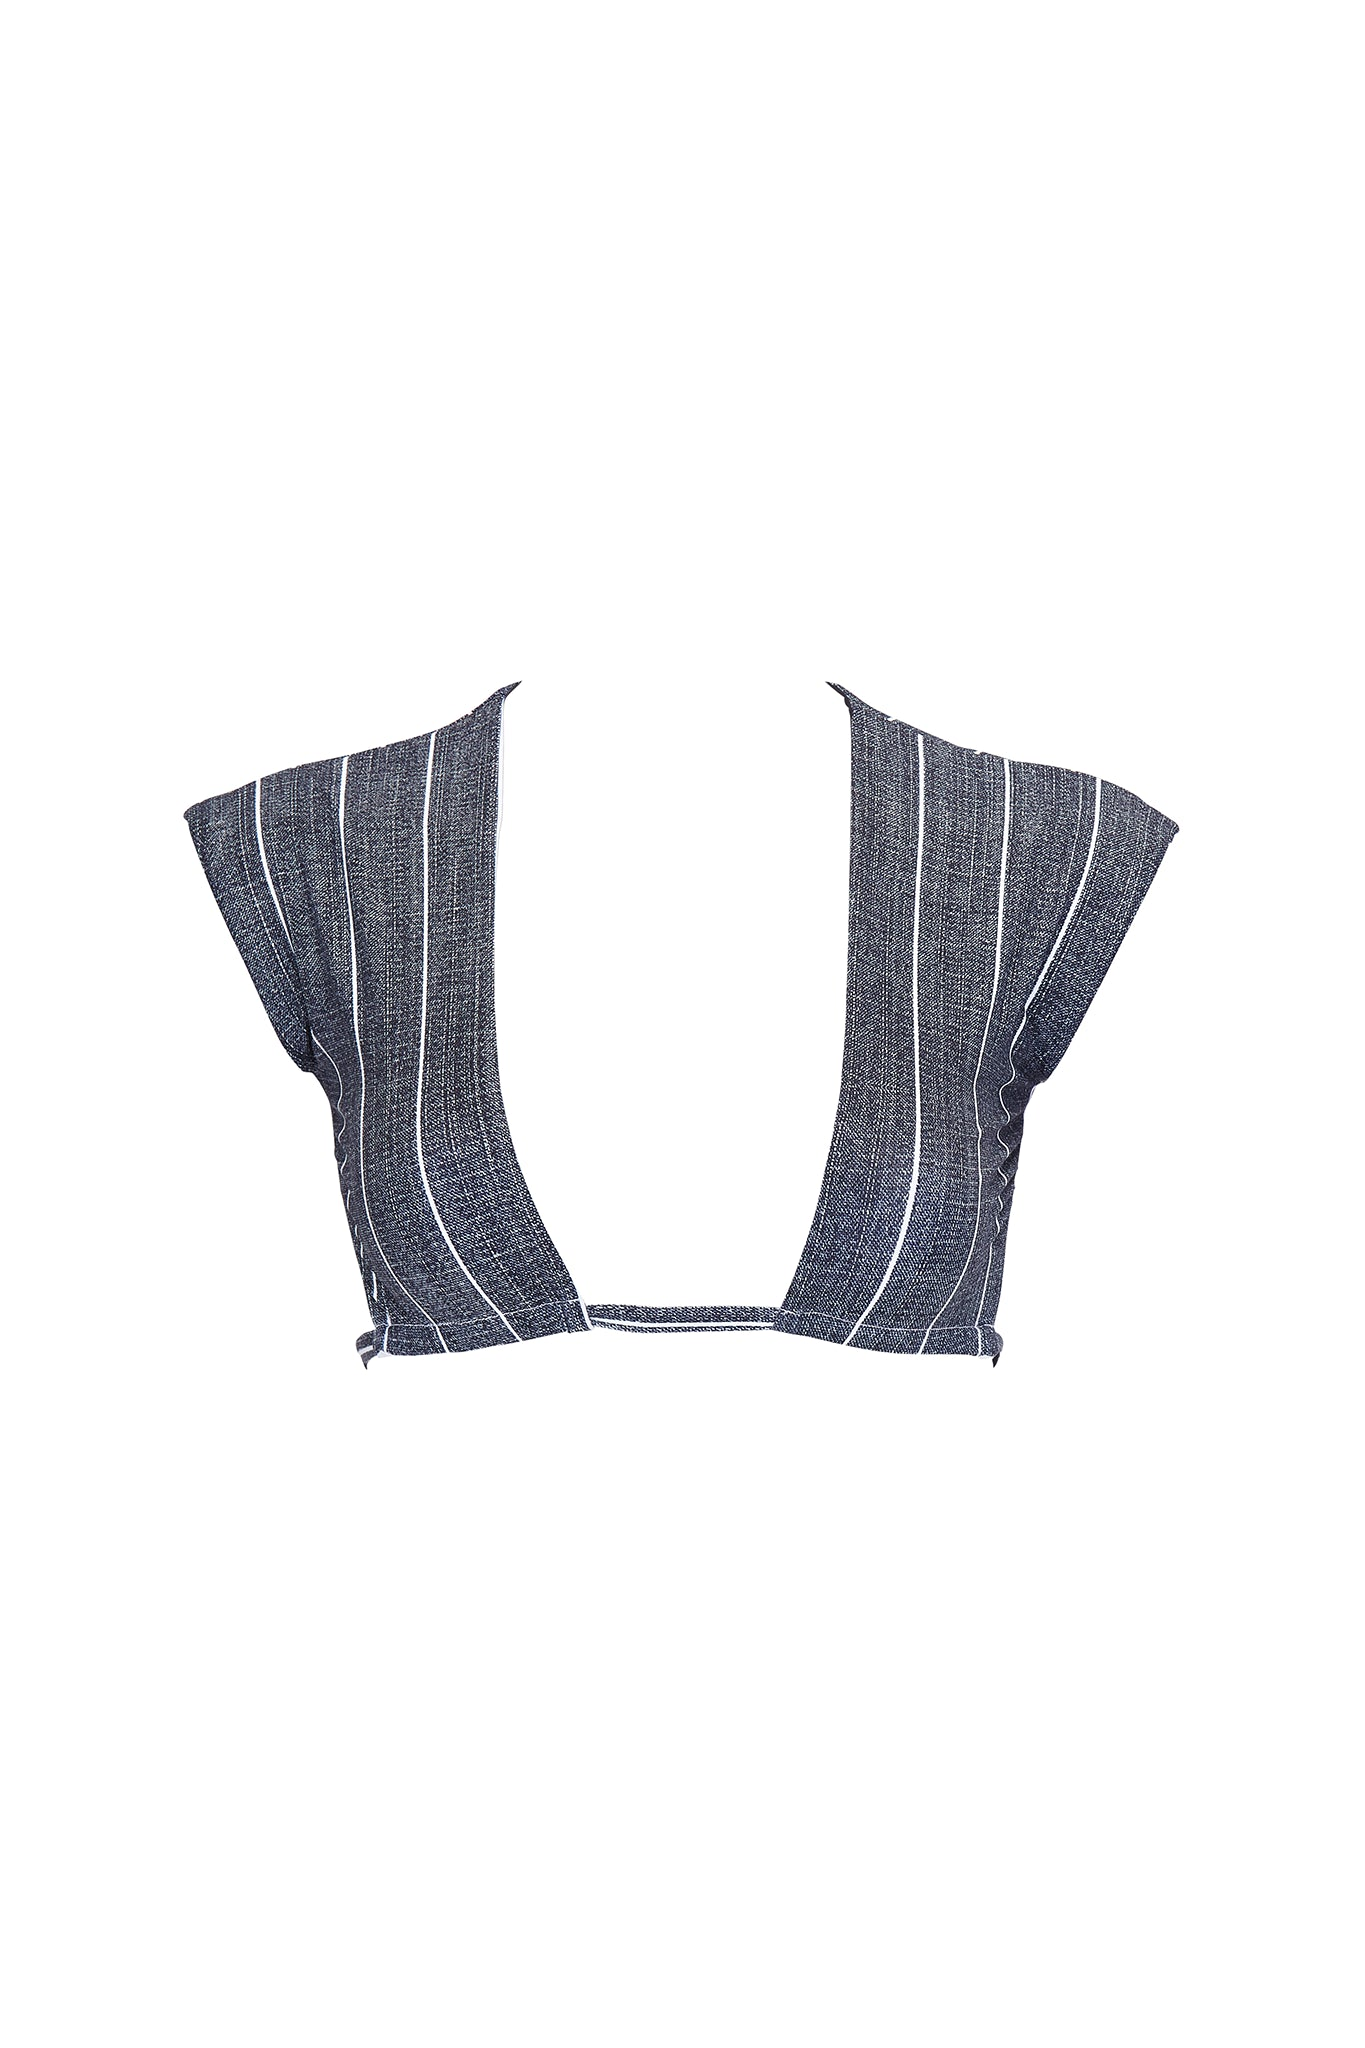 Bradley cap sleeve cropped swim top in grey pinstripe product shot front